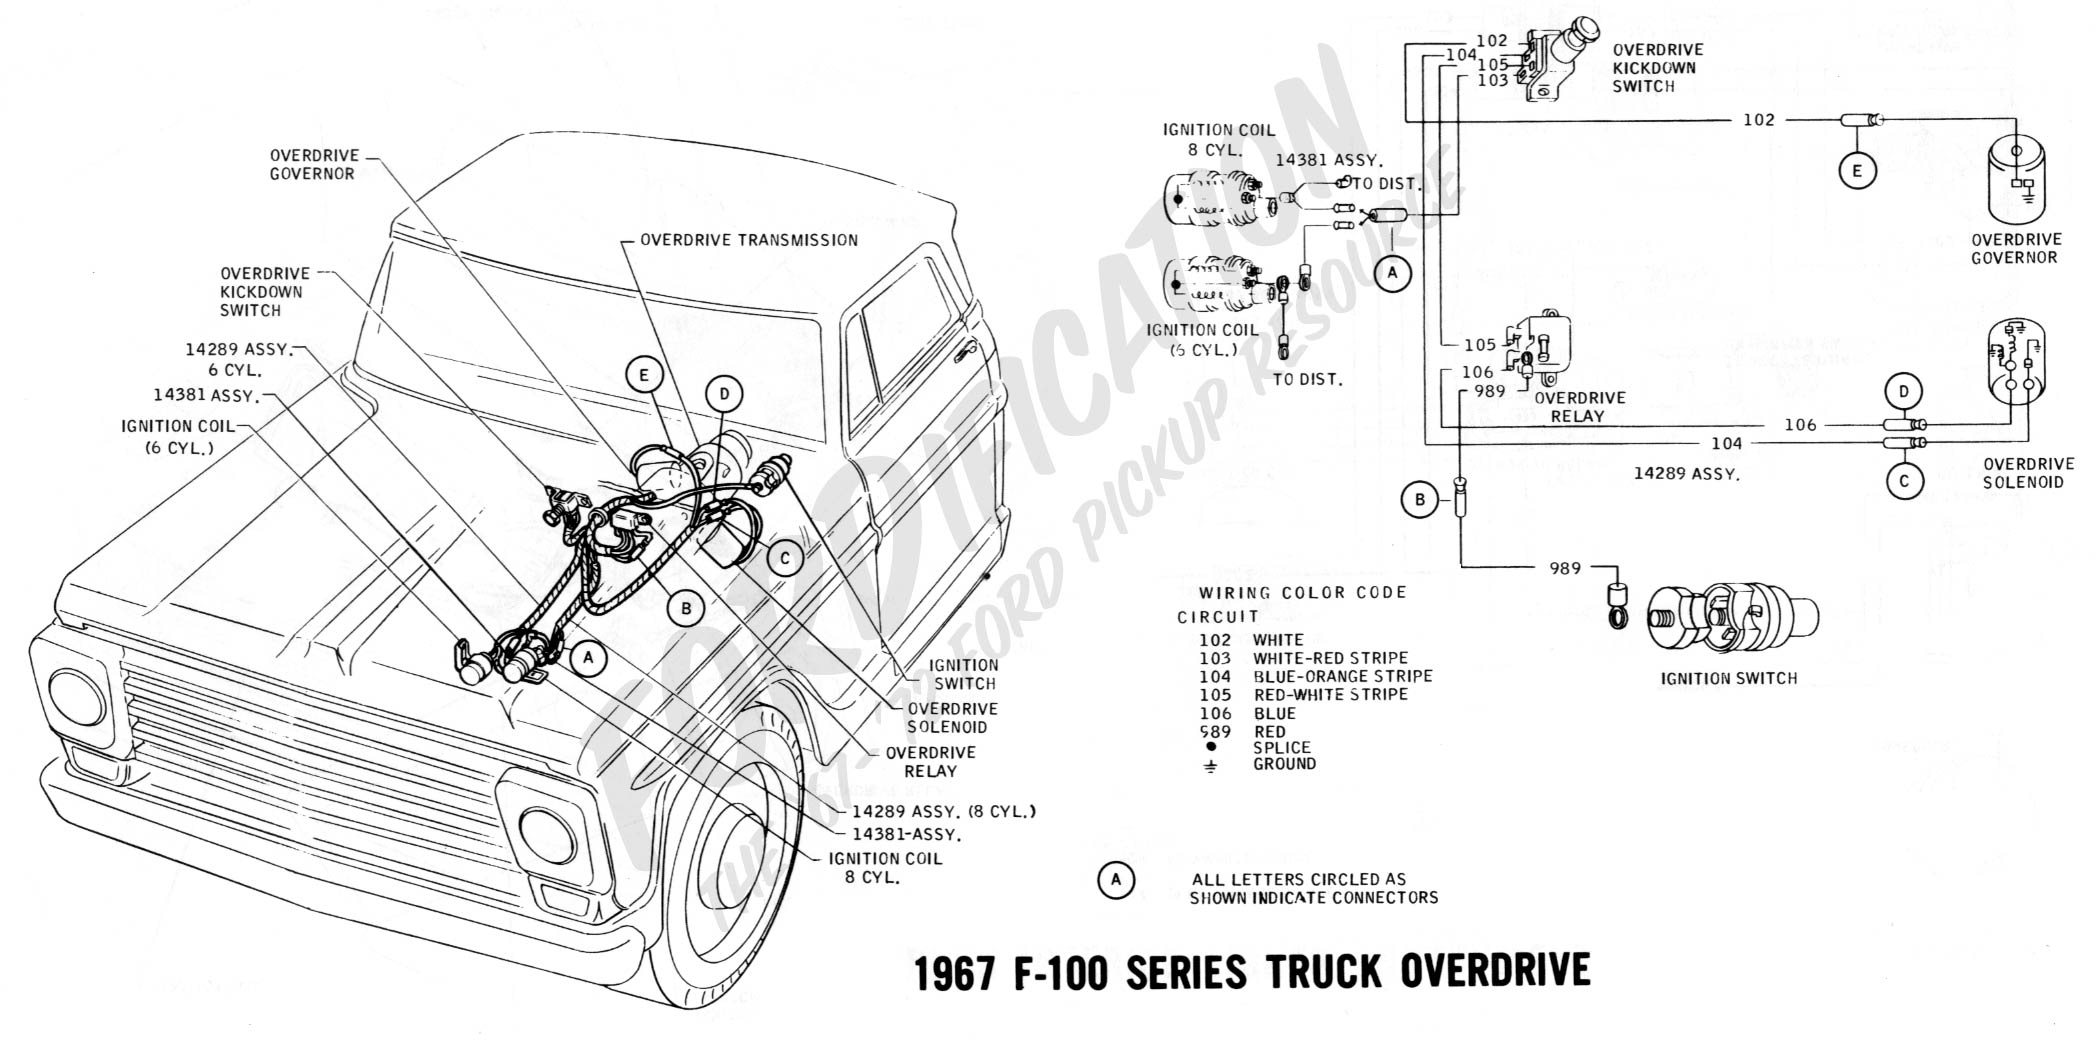 1968 Ford F 250 Alternator Wiring Diagram Just Another 1985 Mustang Dist Simple Diagrams Rh 8 Zahnaerztin Carstens De Harness